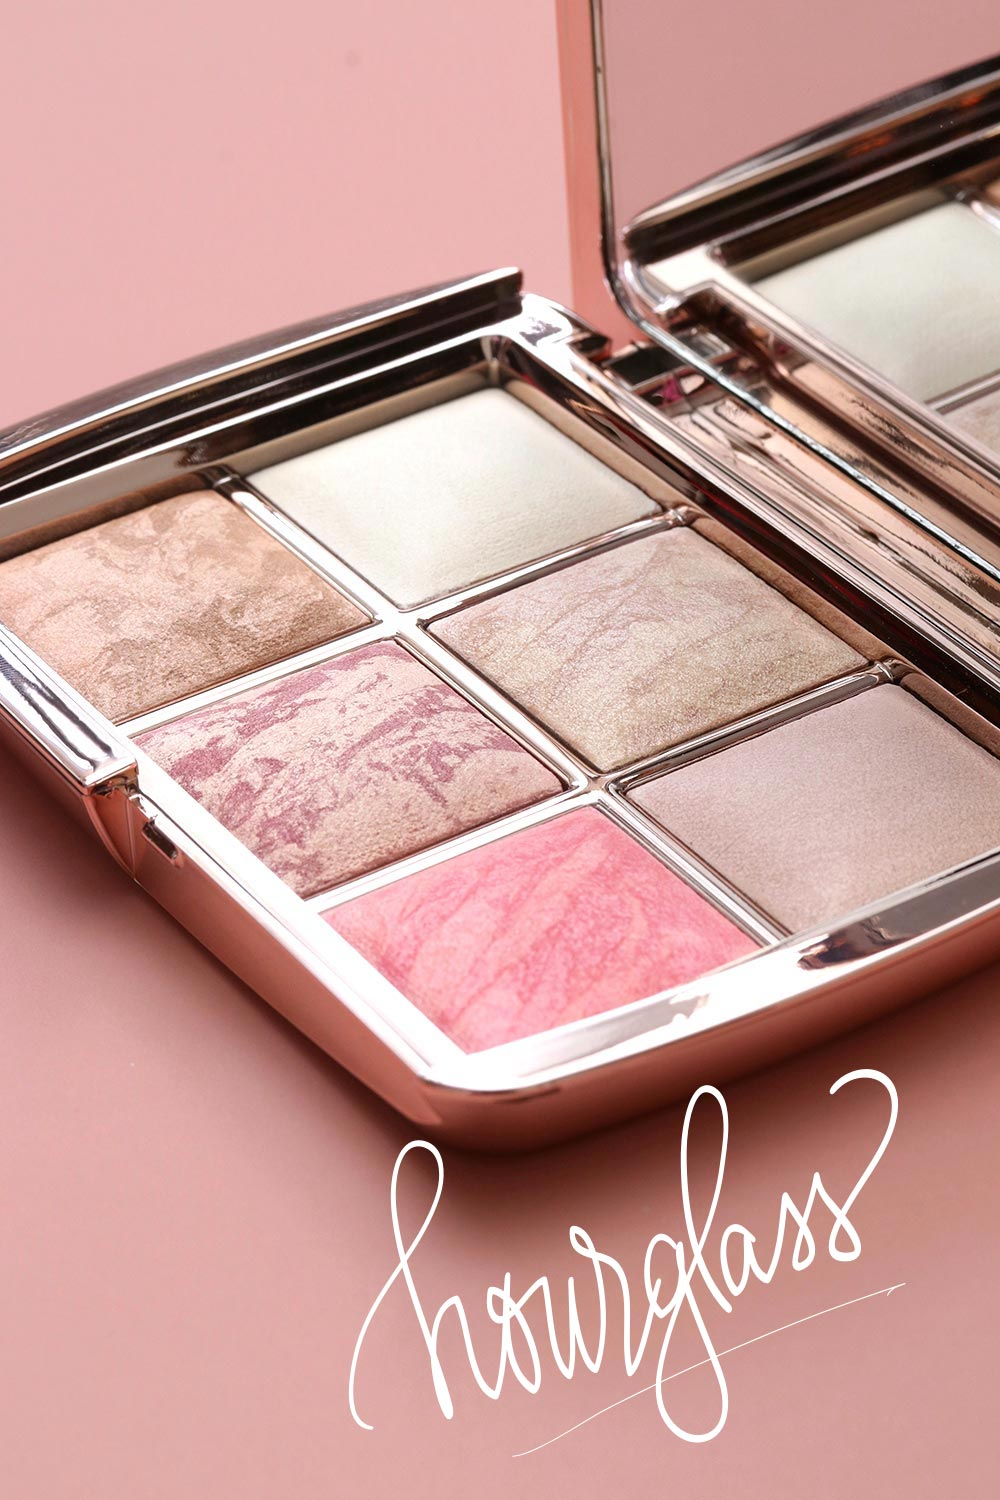 hourglass ambient lighting edit vol 3 top pic